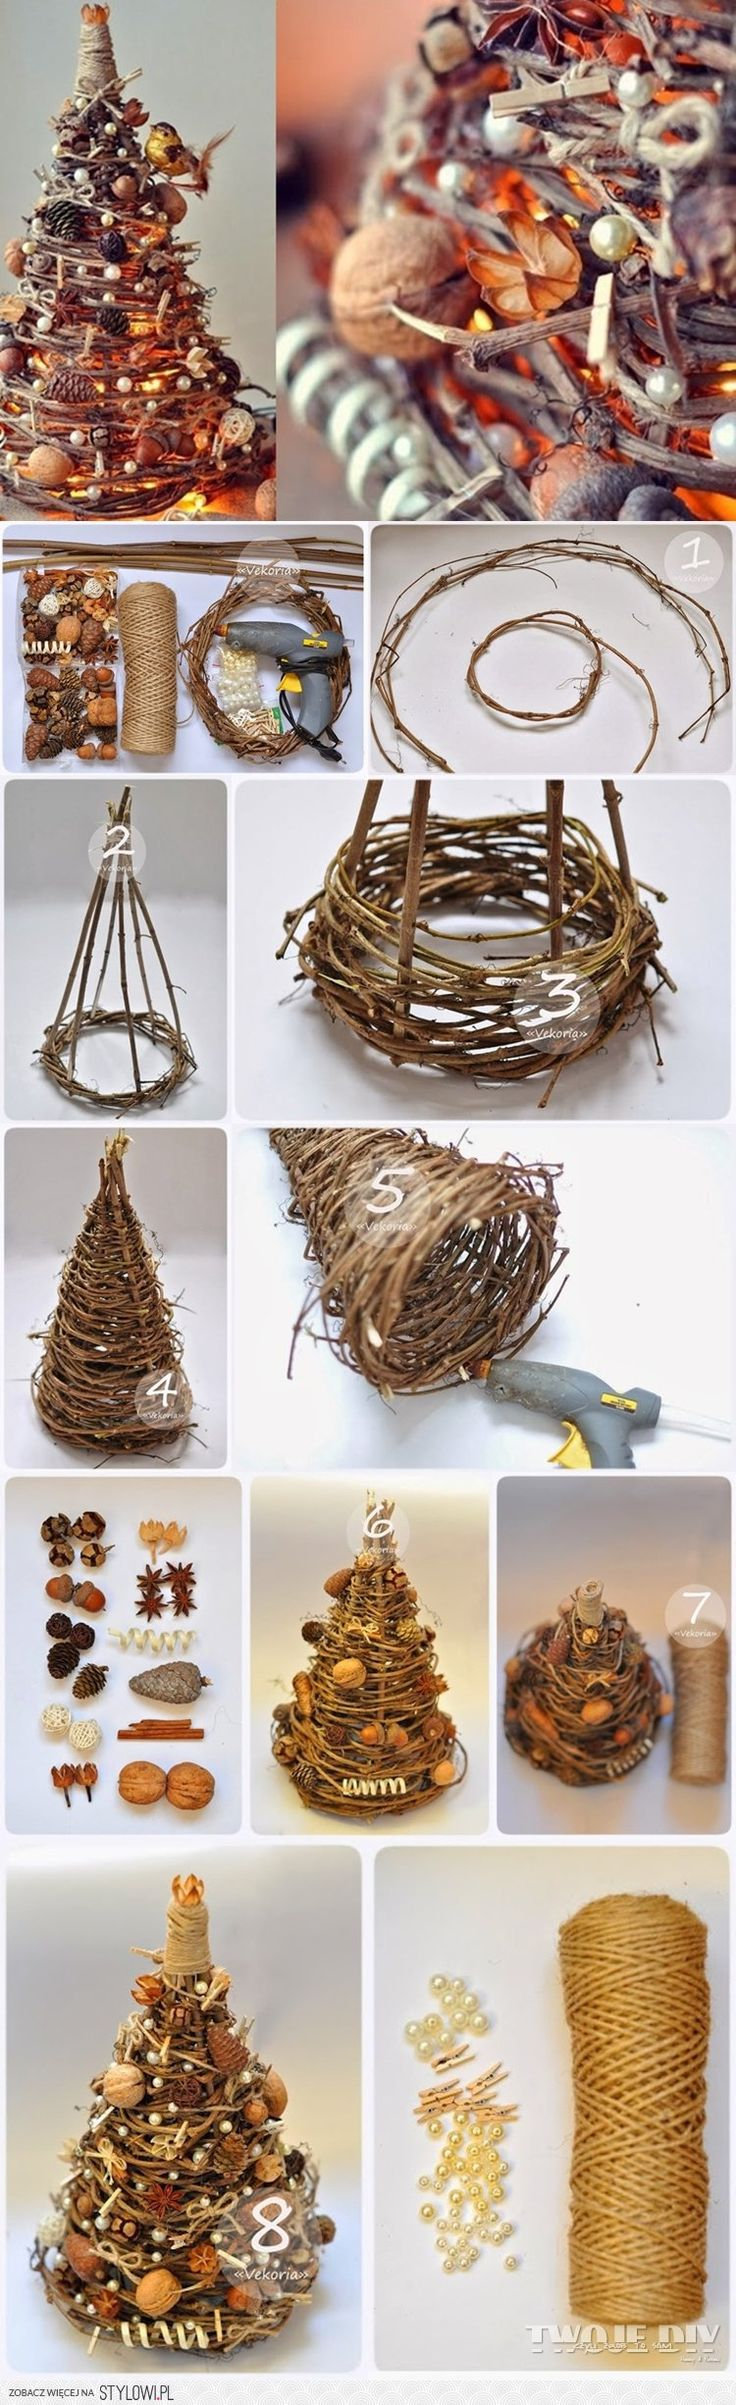 DIY Lighted Christmas Tree with every kind of crazy decorations you want!